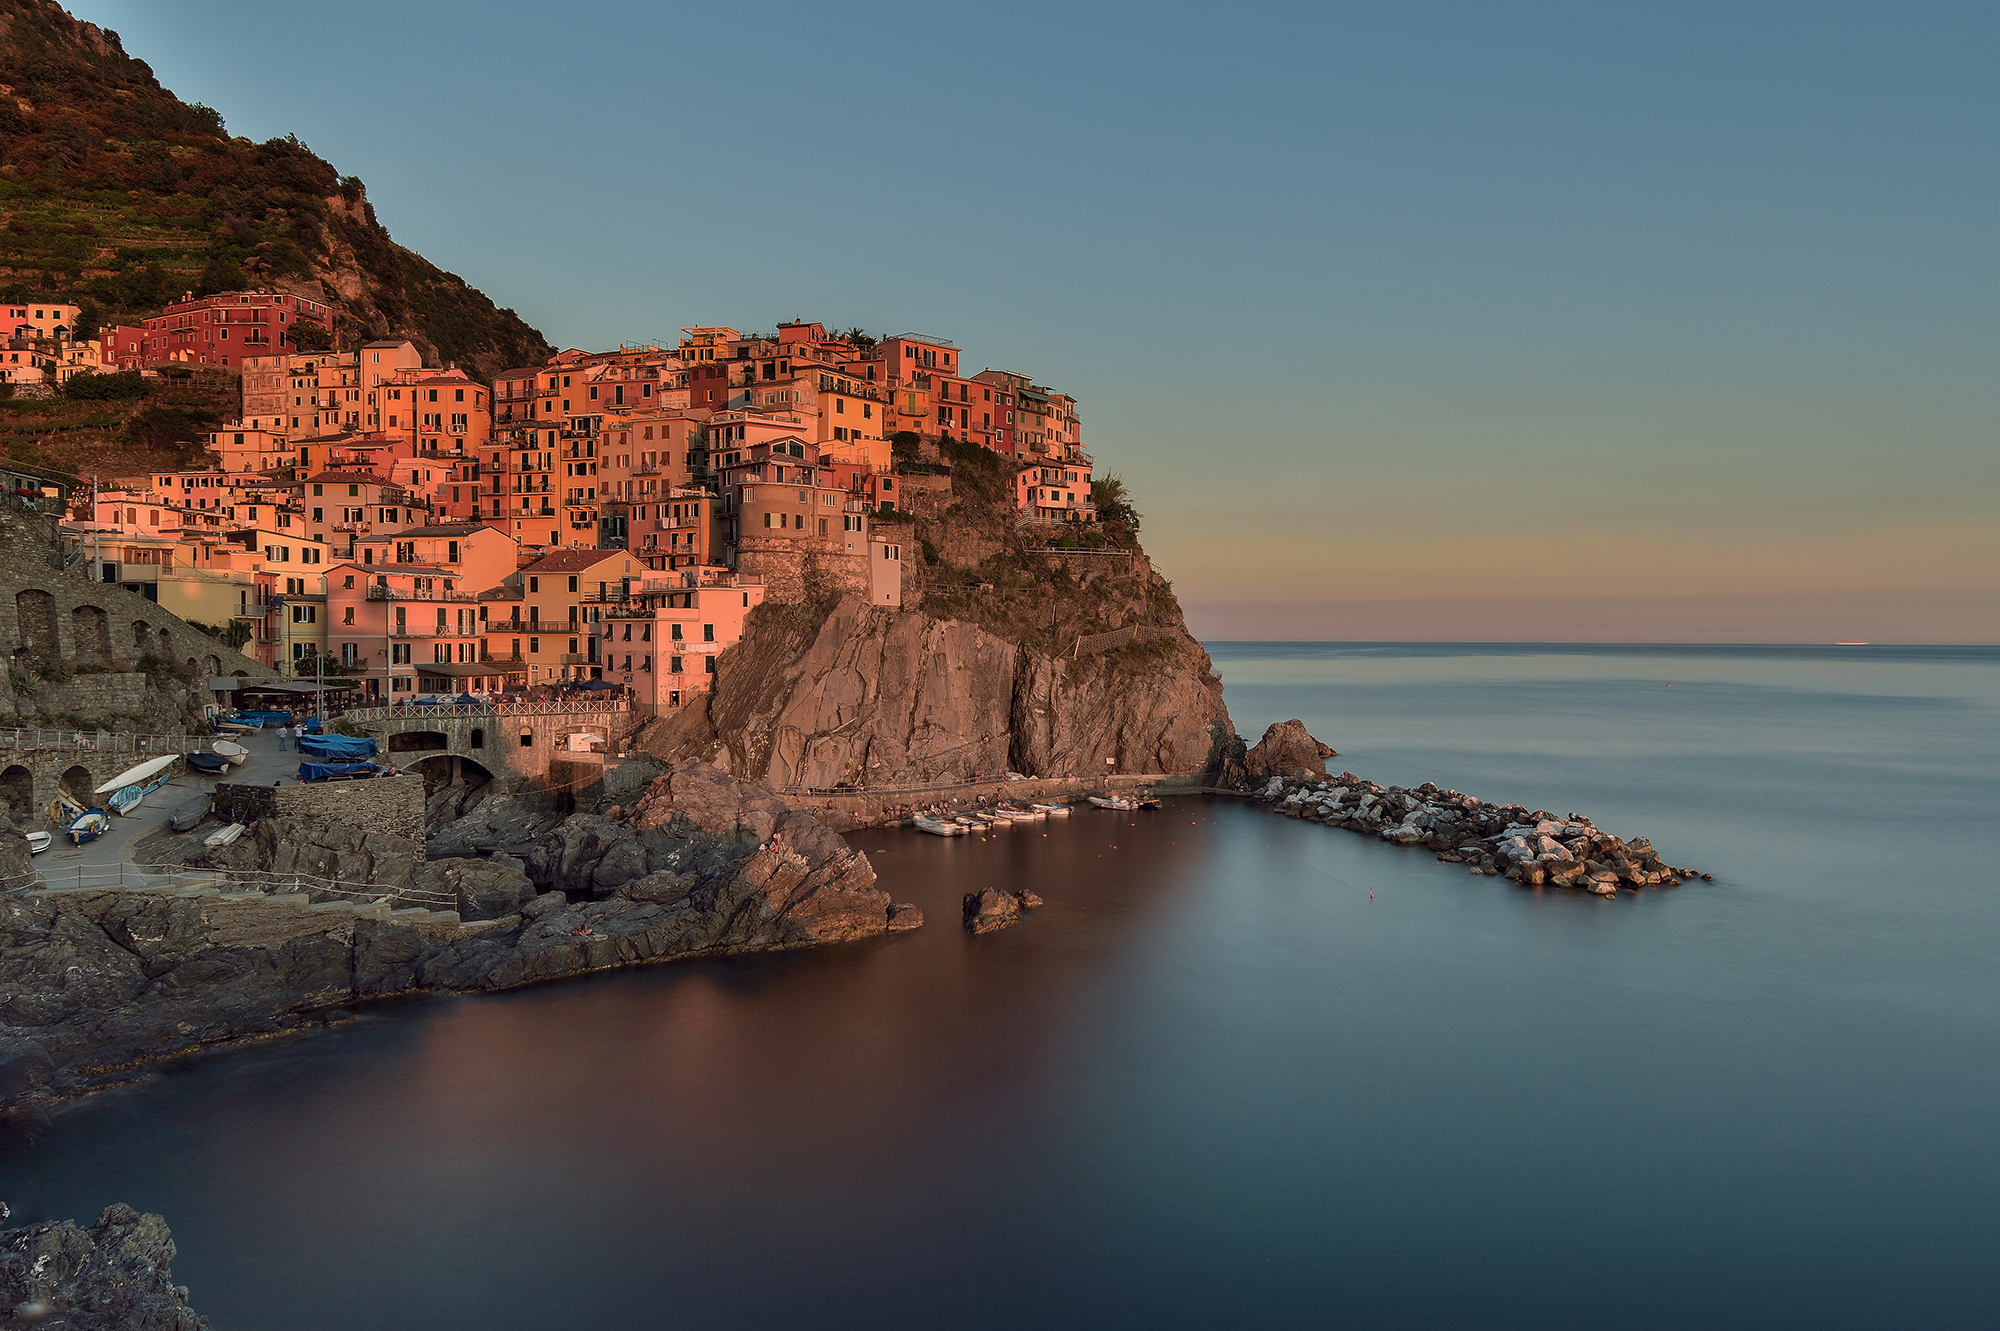 Sunset in Manarola...